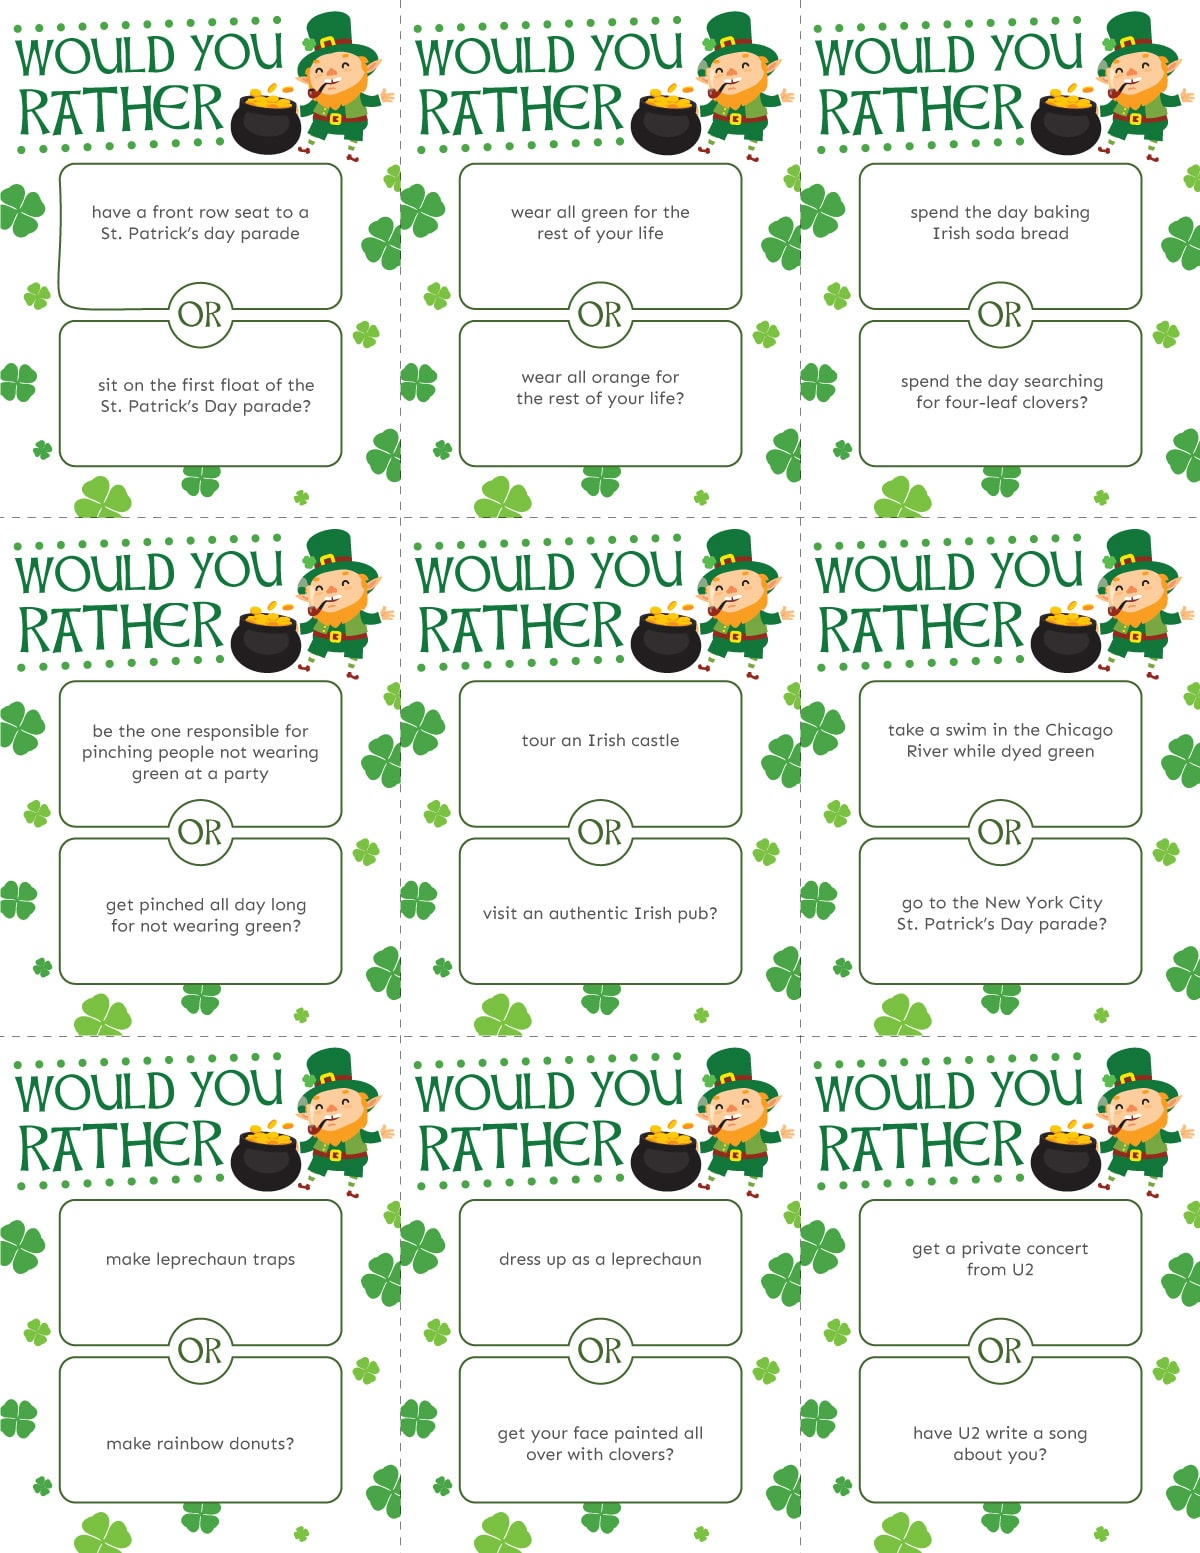 Sheet of St. Patrick's Day would you rather cards